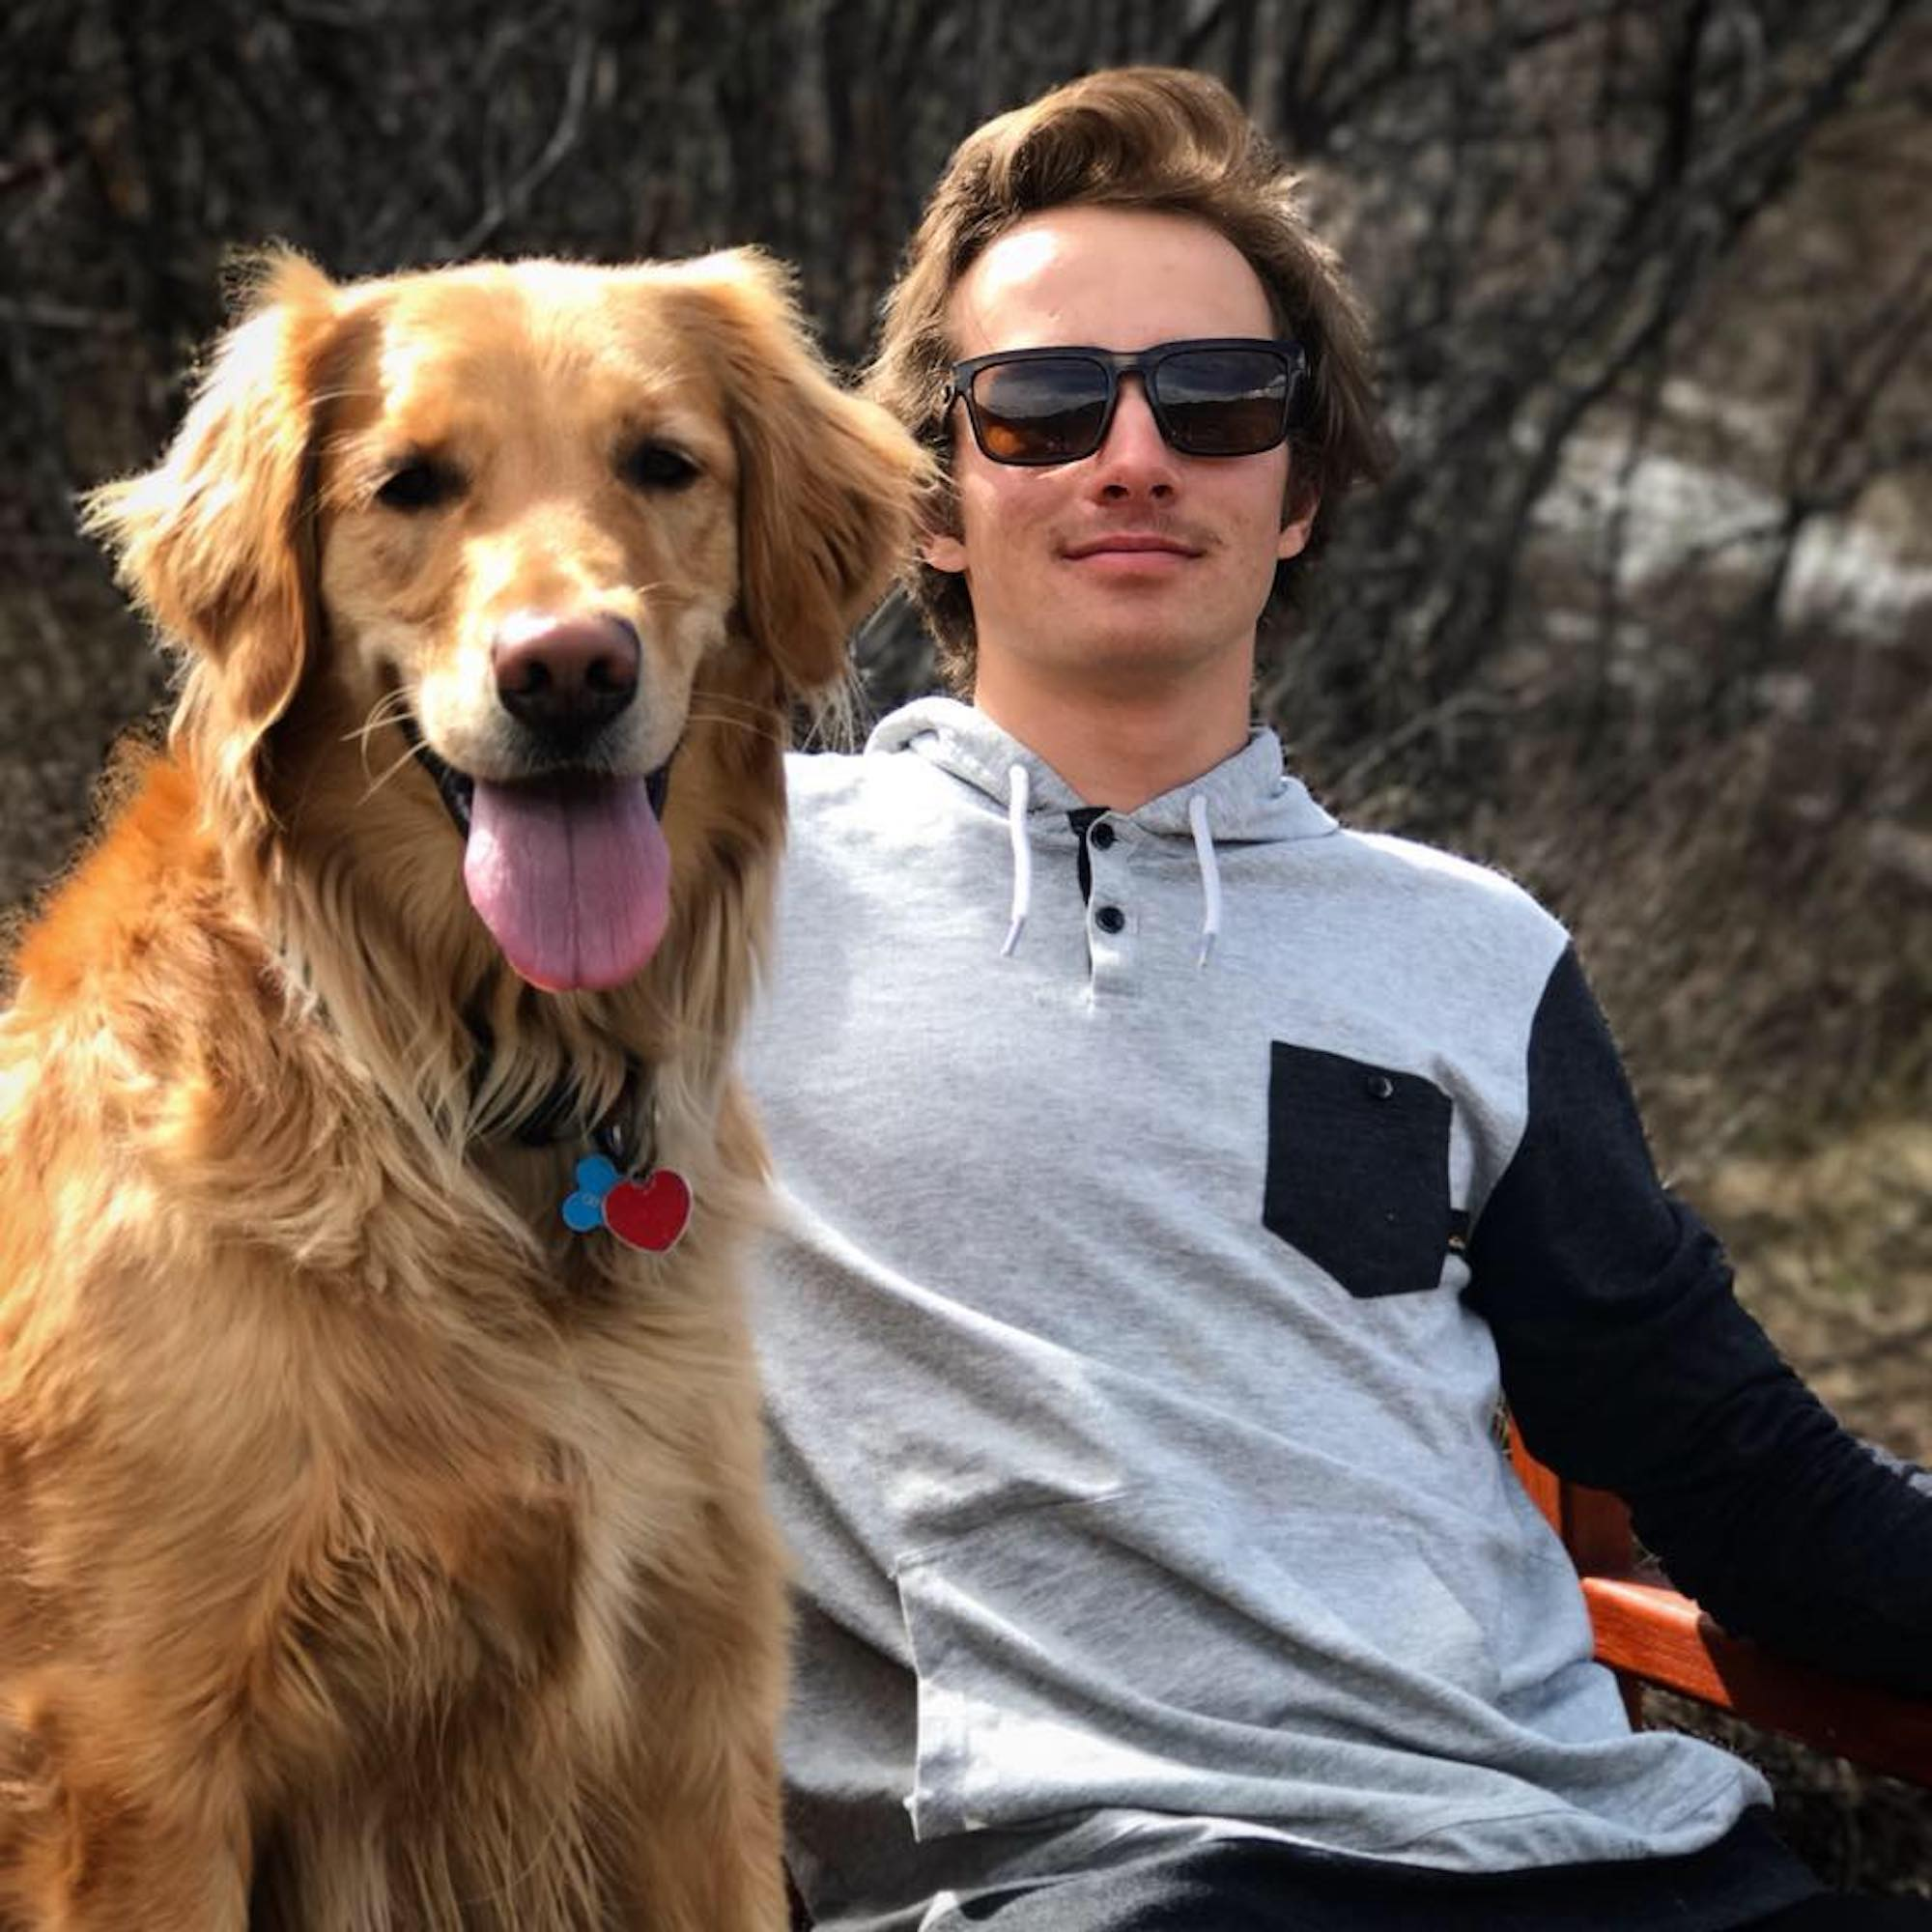 Vail Valley man dies while backcountry skiing